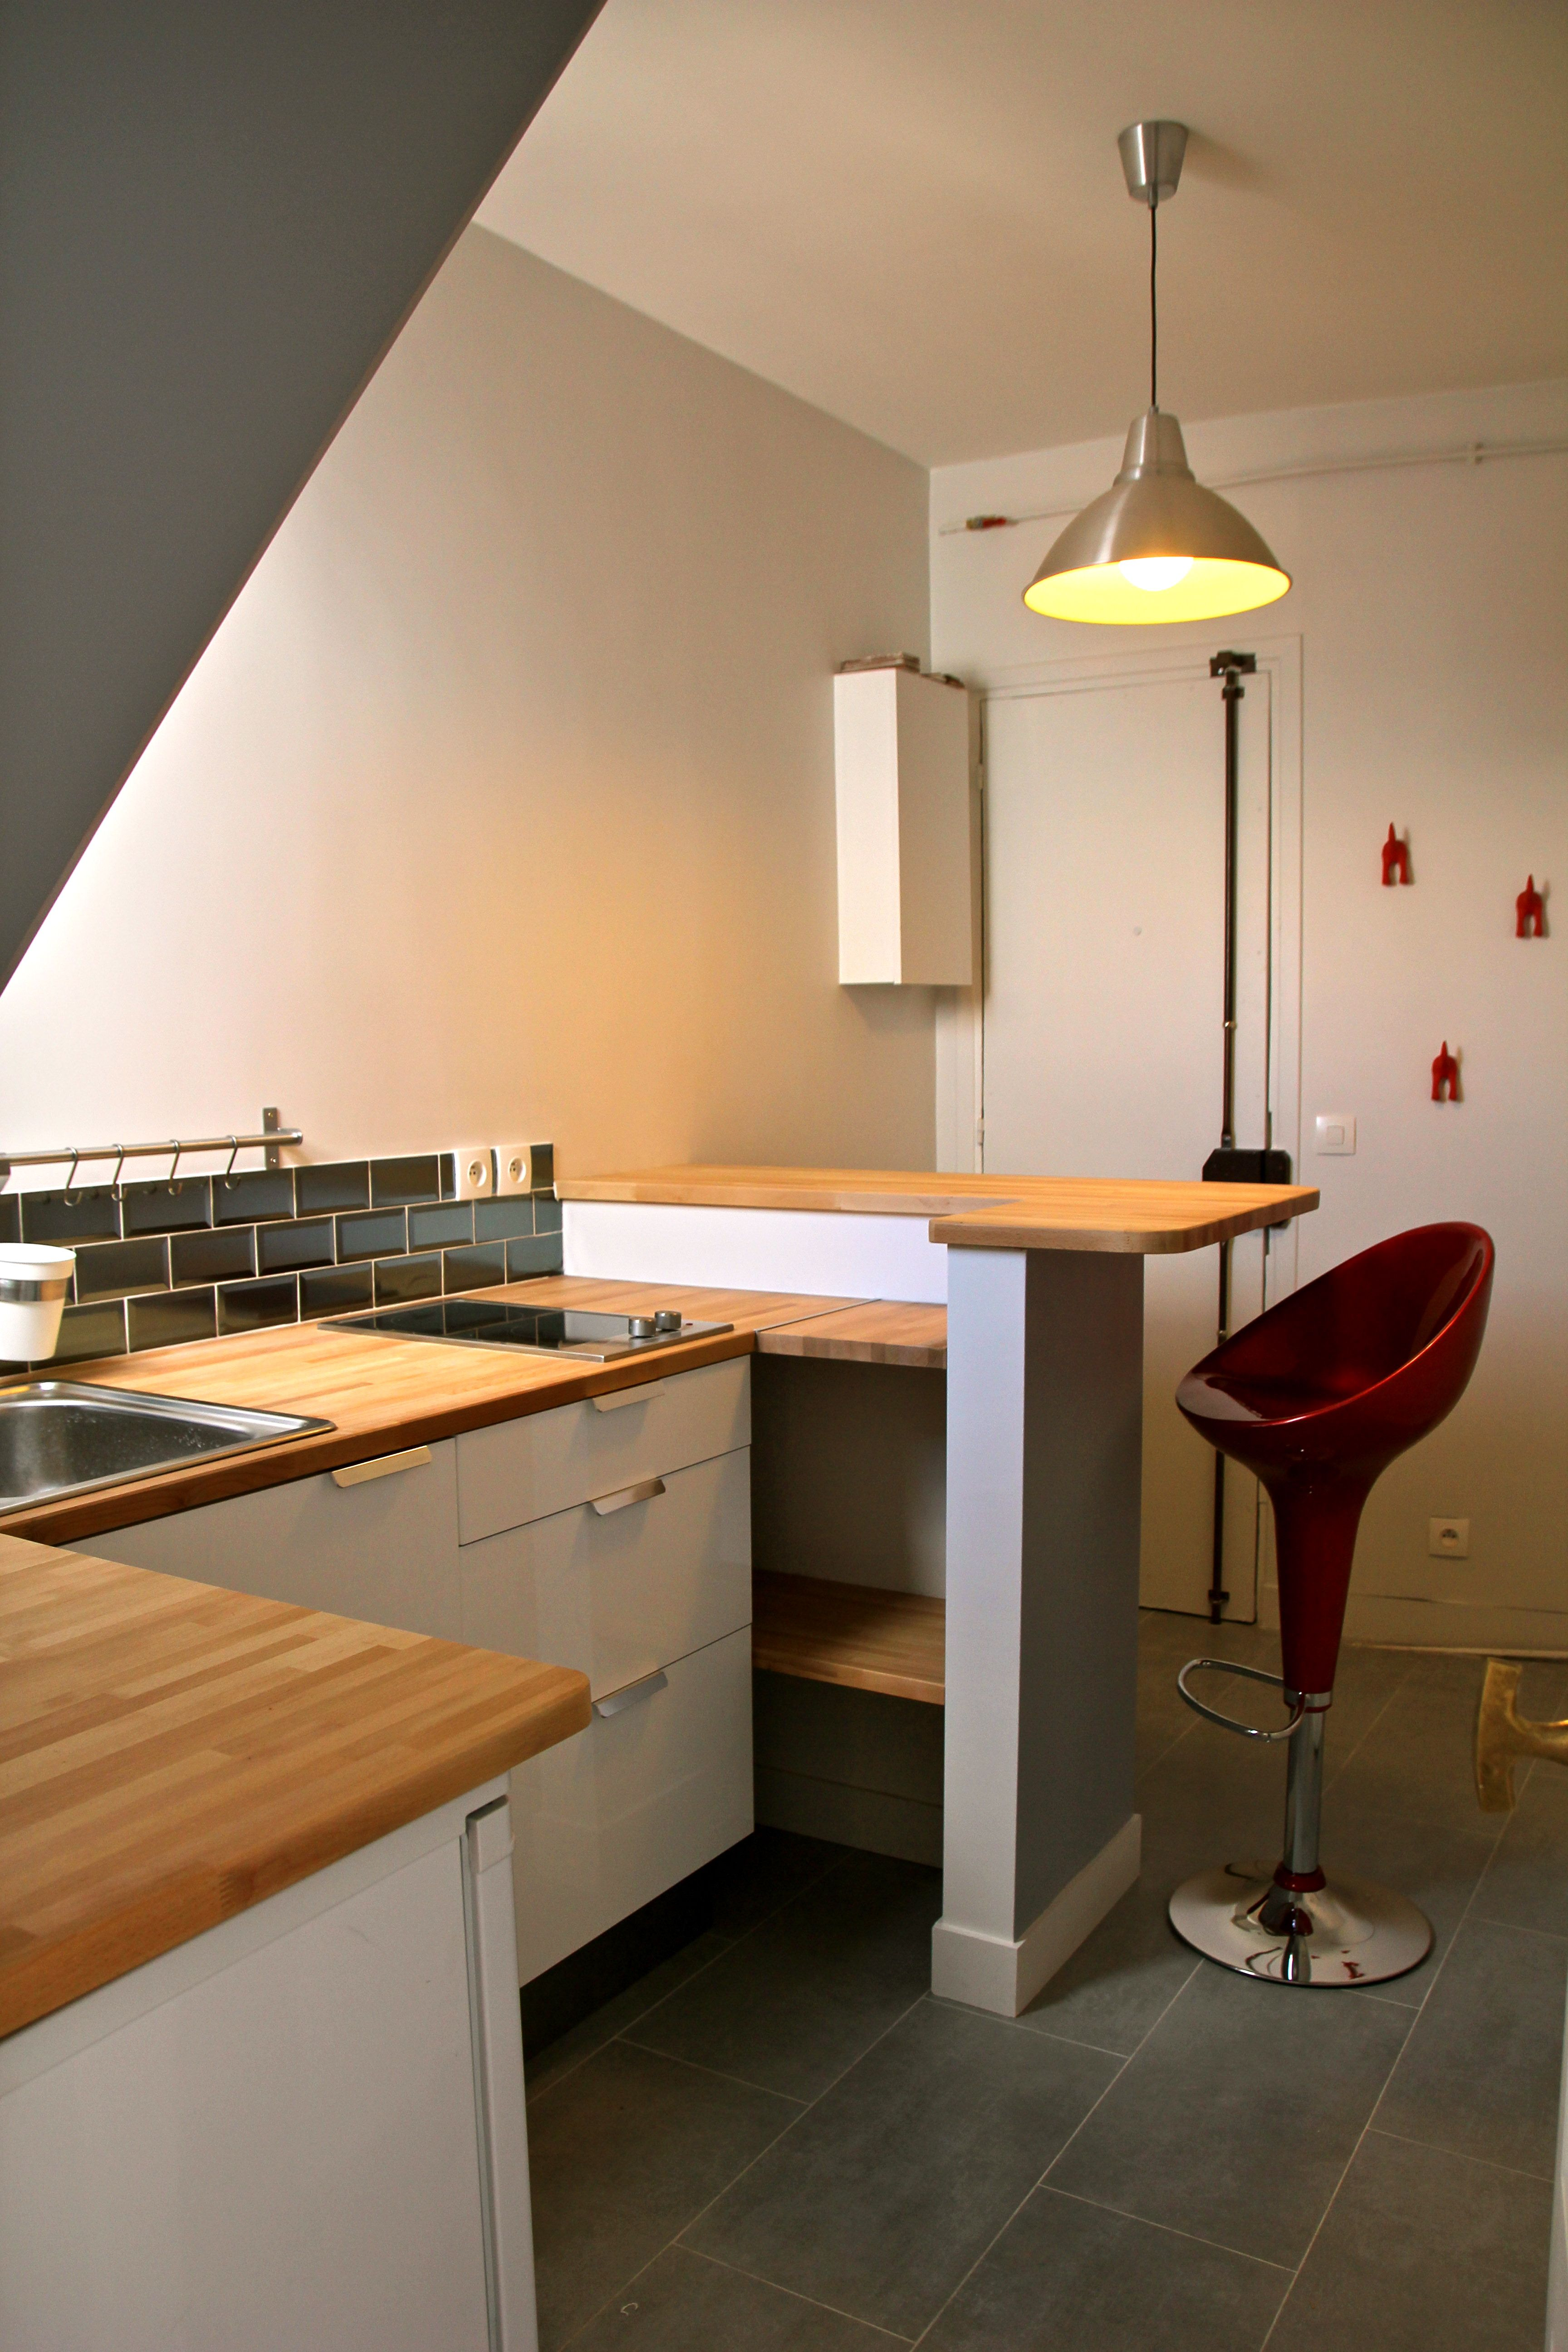 white grey and red kitchen for student flat ikea by murs merveilles i. Black Bedroom Furniture Sets. Home Design Ideas